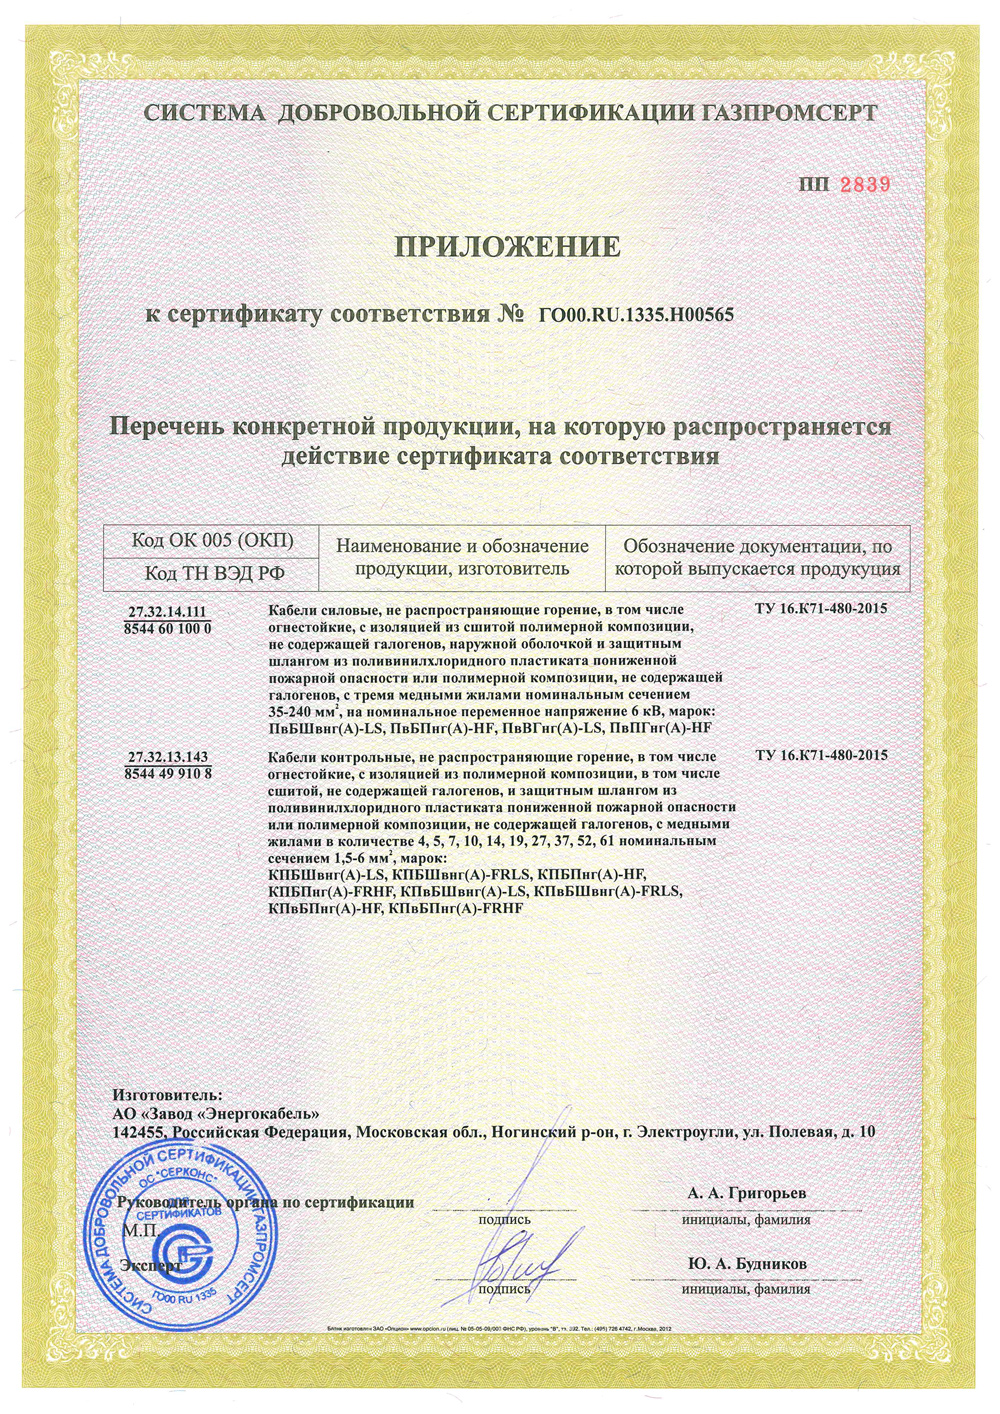 The appendix №2 to the certificate of Conformity № ГО00.RU.1335.Н00565.